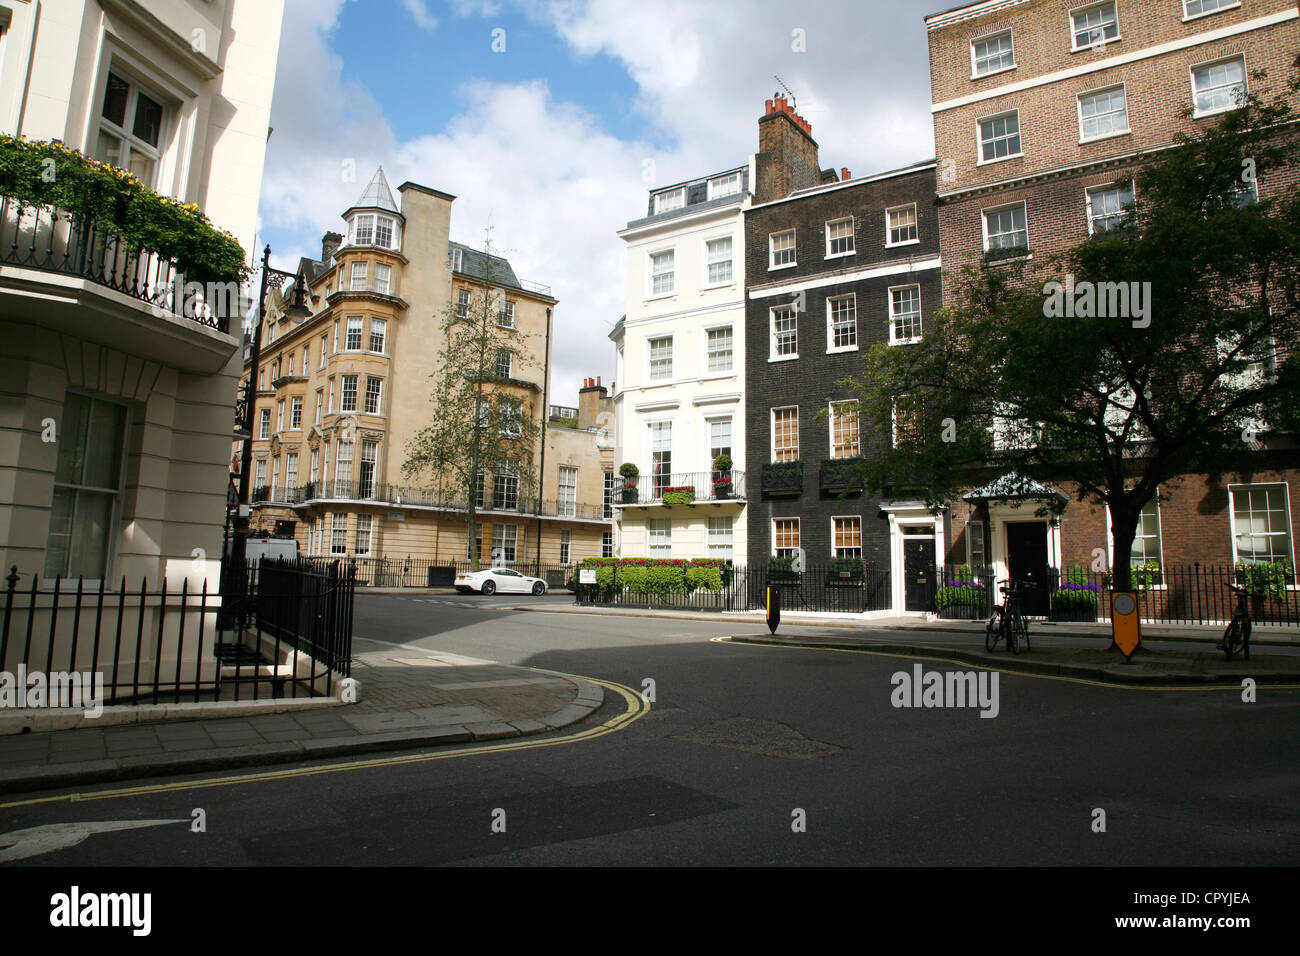 Junction of Charles Street, Queen Street and Chesterfield Hill, Mayfair, London, UK - Stock Image